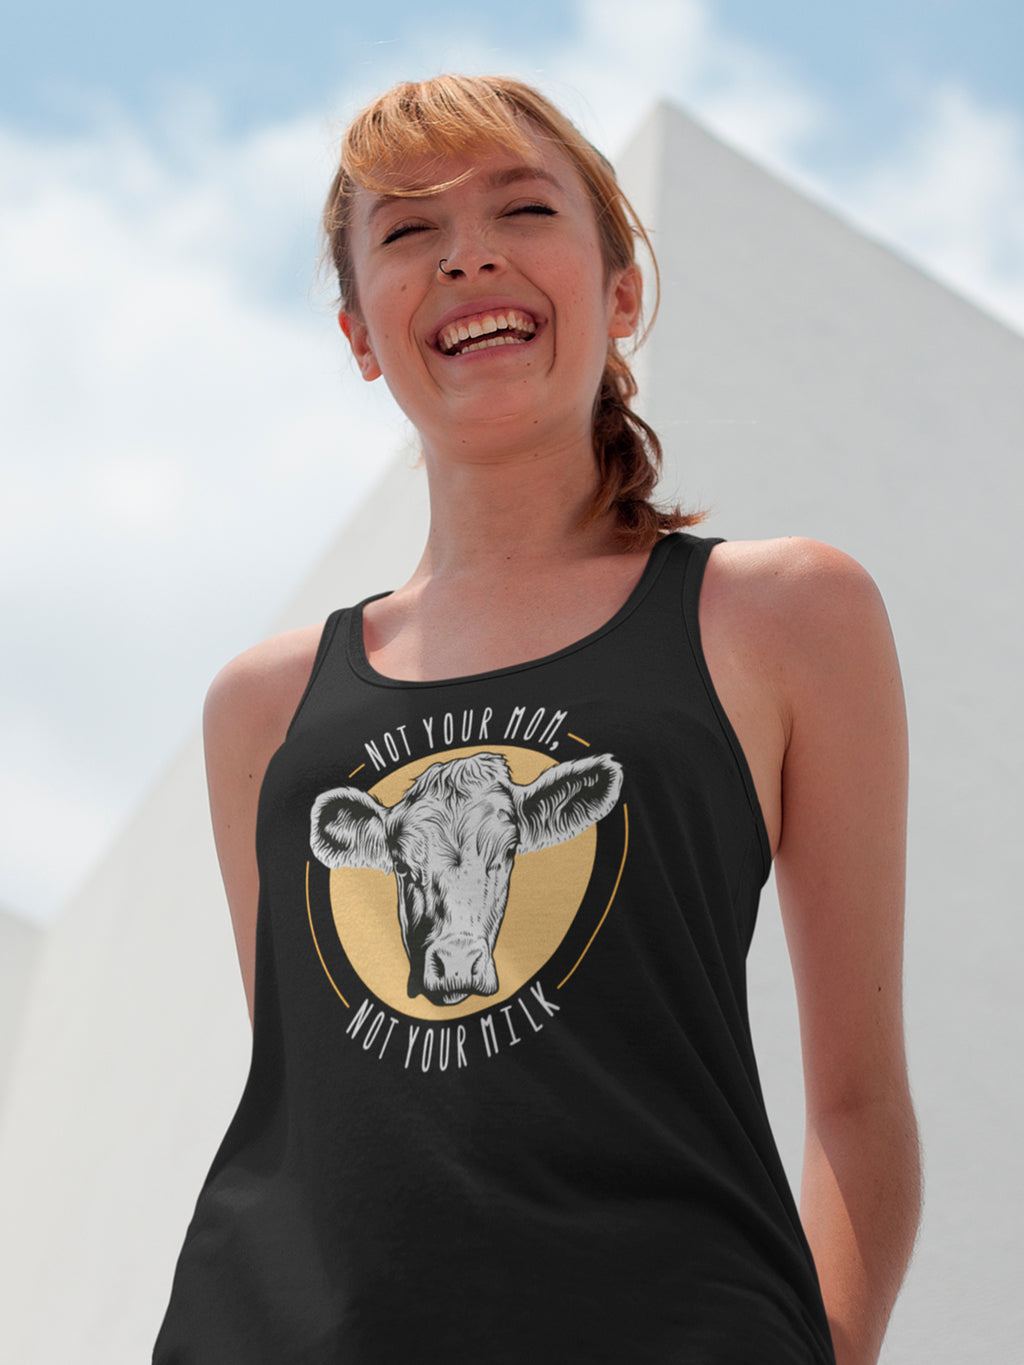 Not your mom, not your milk - Tank top